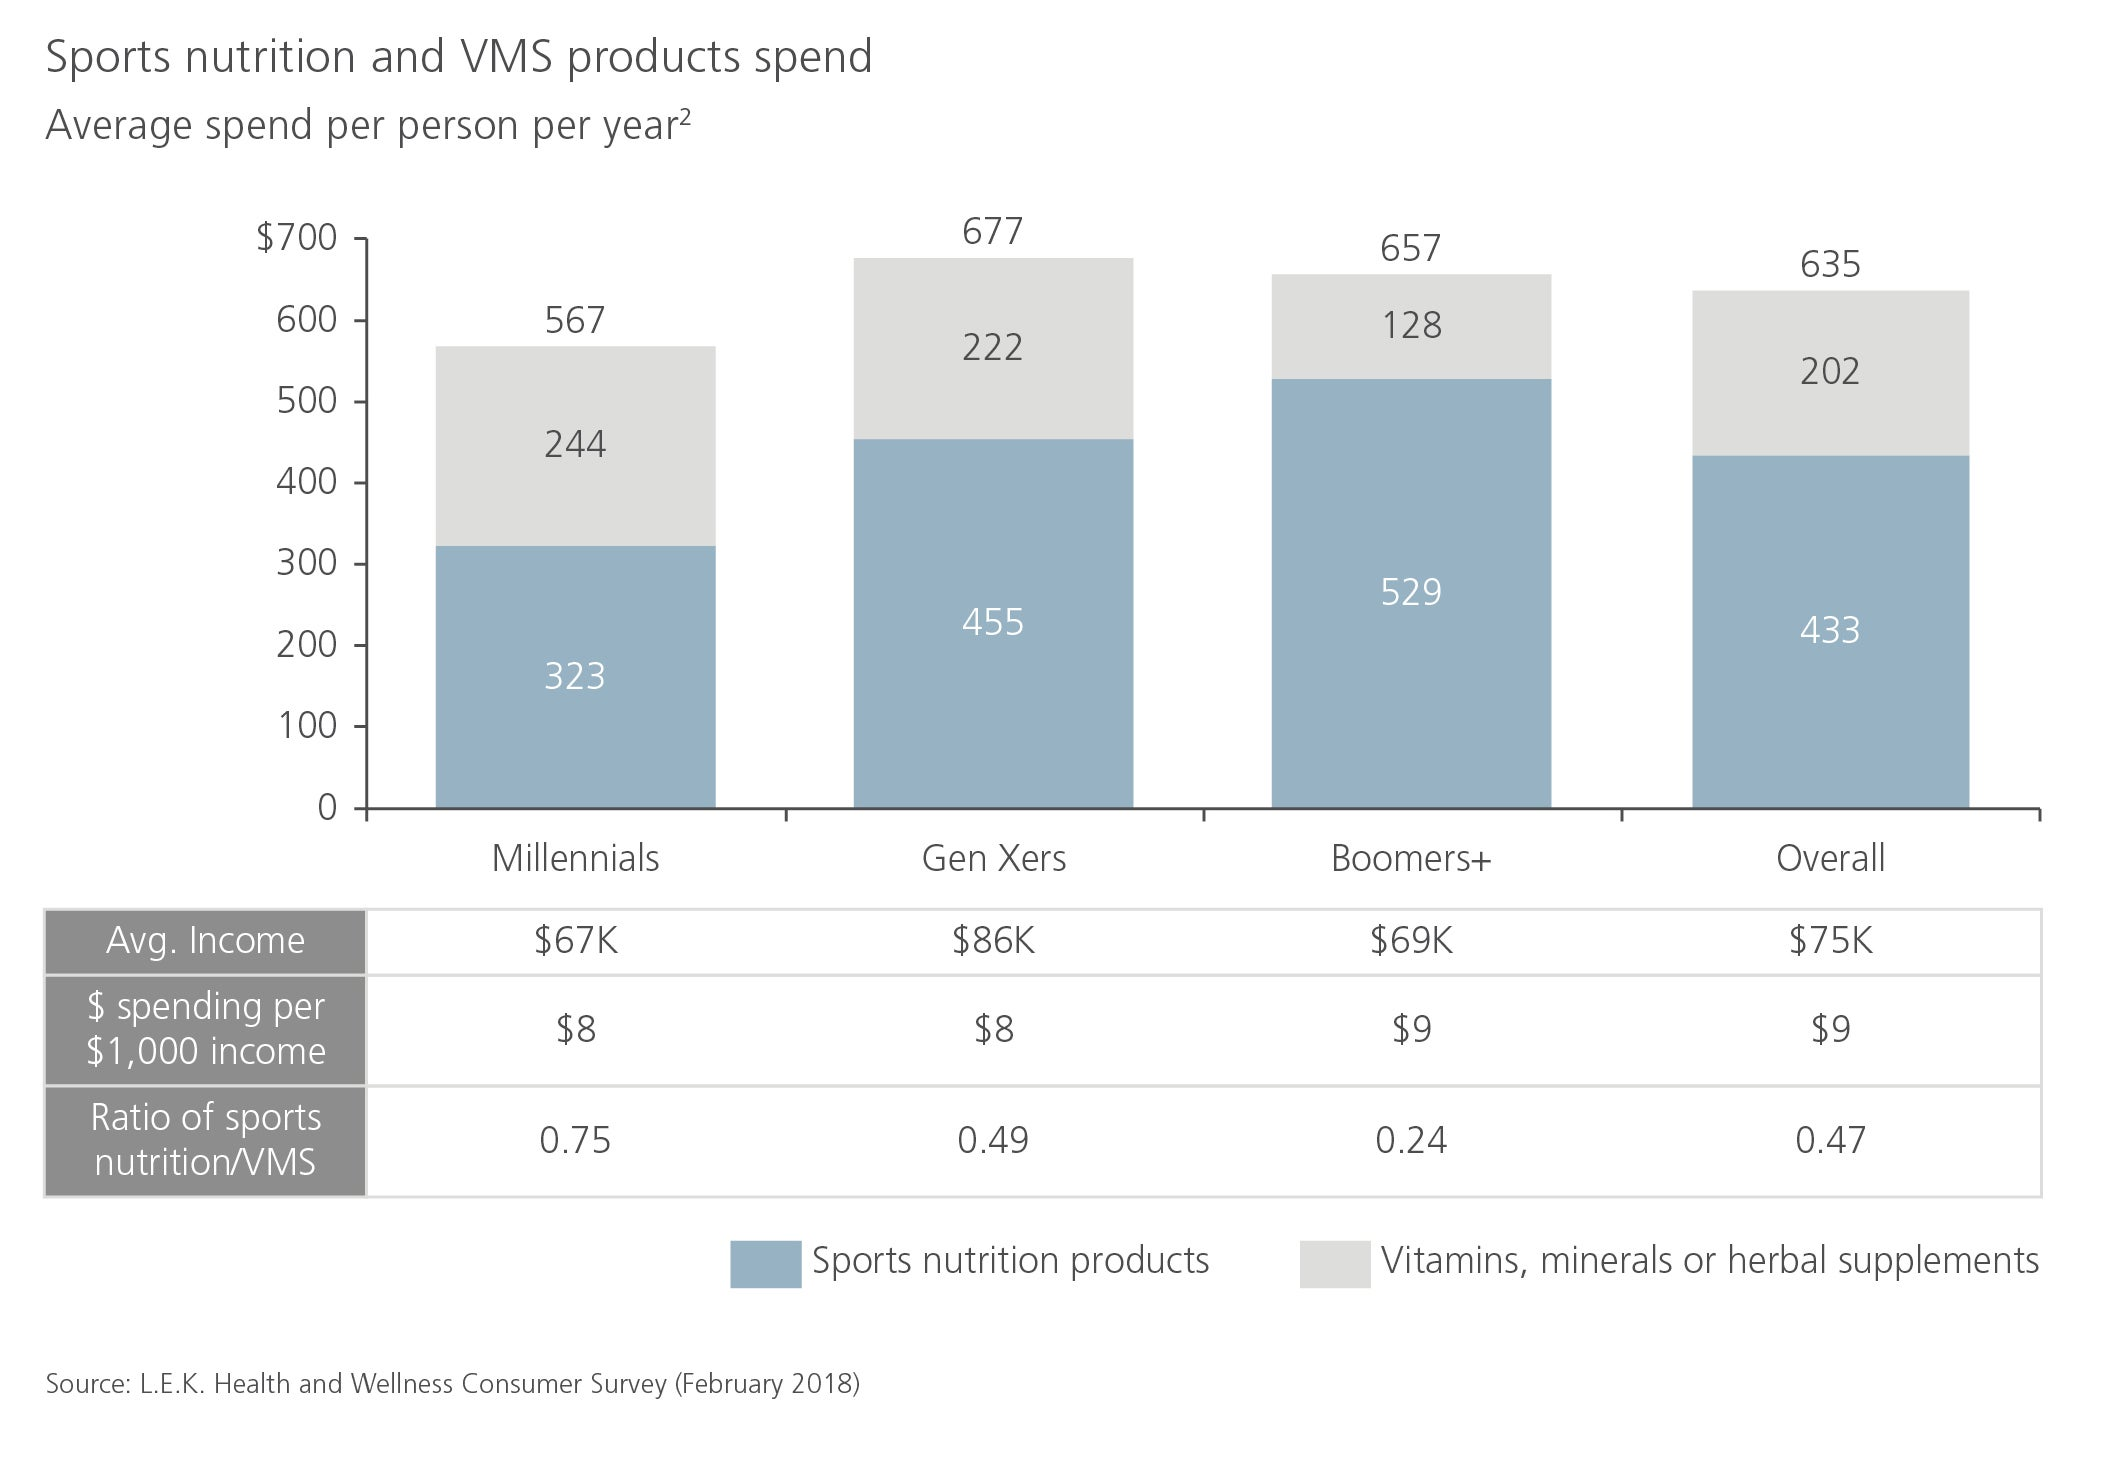 sports nutrition and VMS products spend